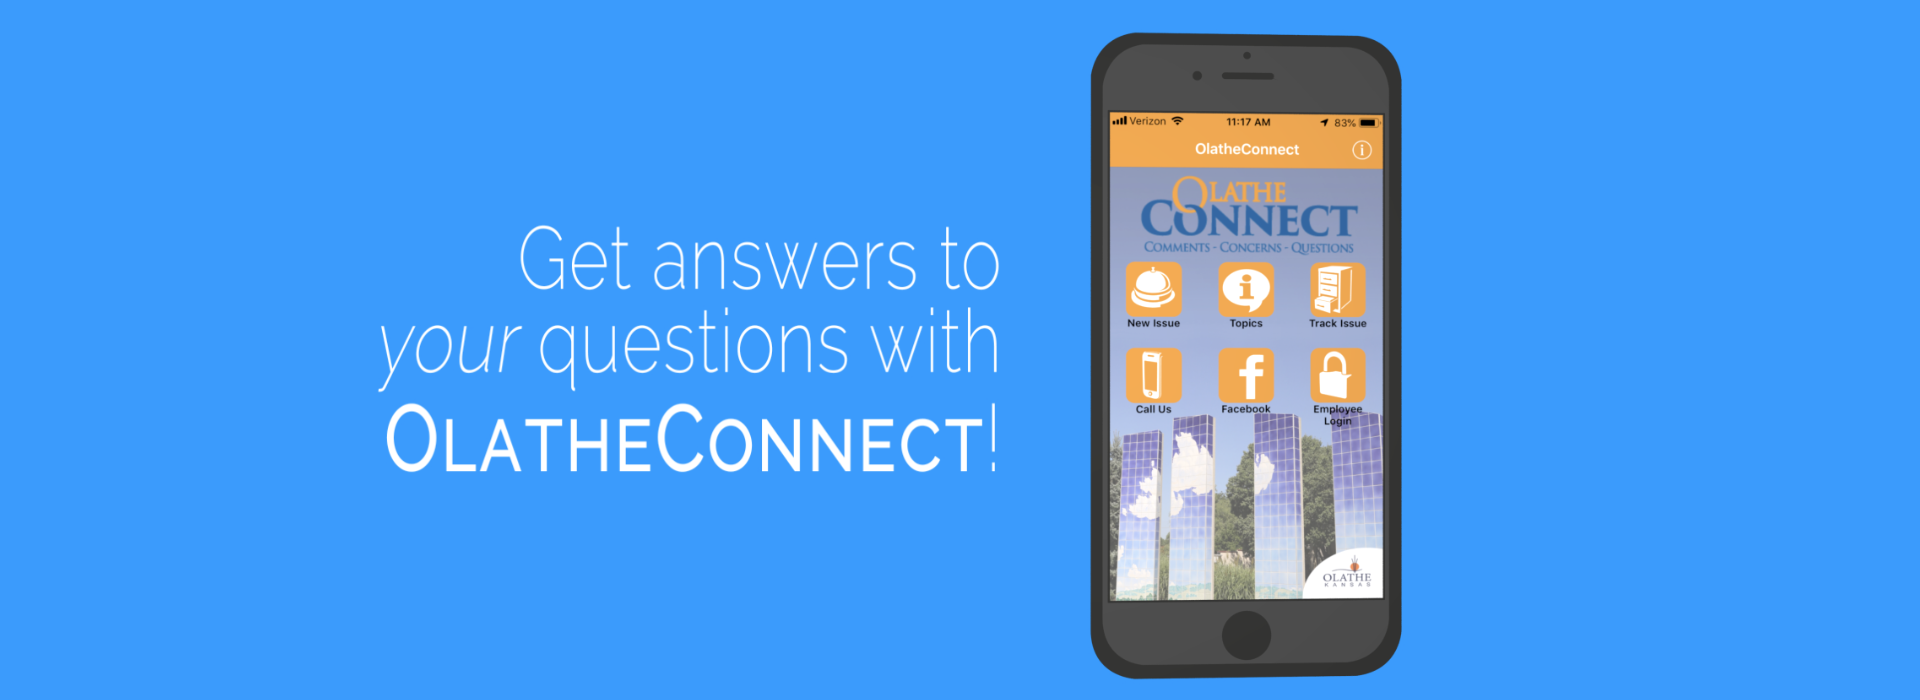 Get answers to your questions with OlatheConnect. Download the app today!